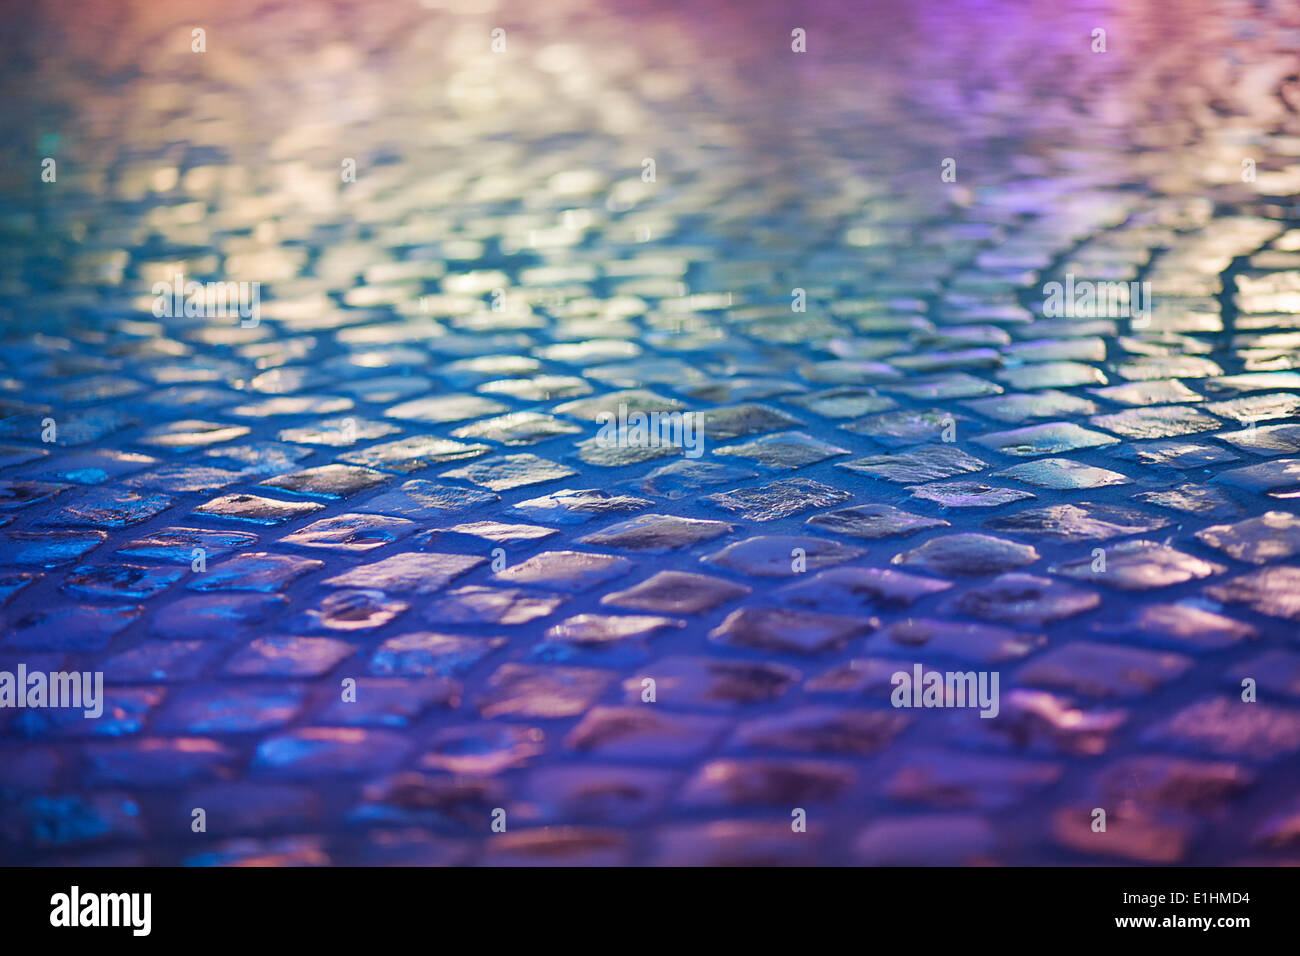 Cobble Stone Pavement - Reflexion in Urban Night. Wet Blue Sidewalk - Stock Image